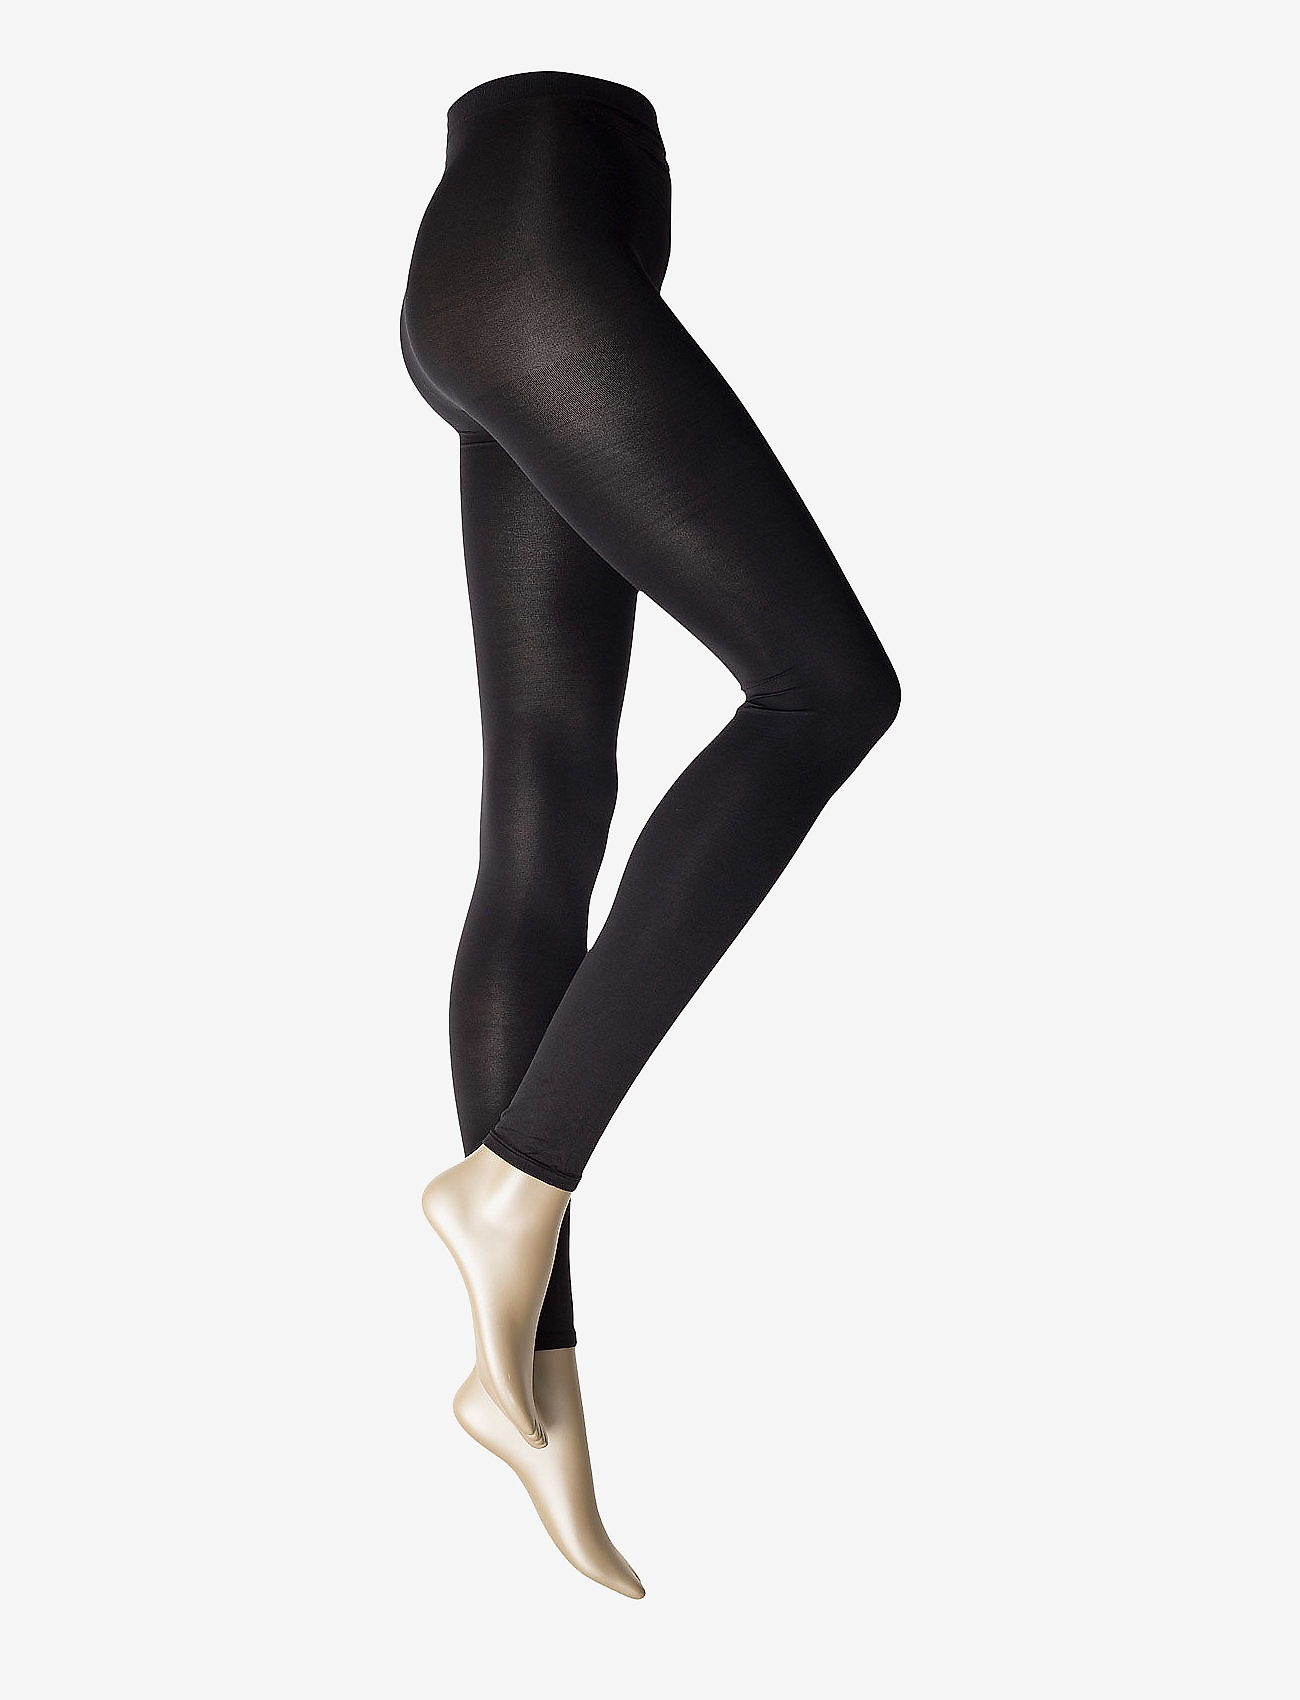 Vogue - Ladies den leggings, Opaque Leggings 3D 80den - strumpbyxor - black - 0